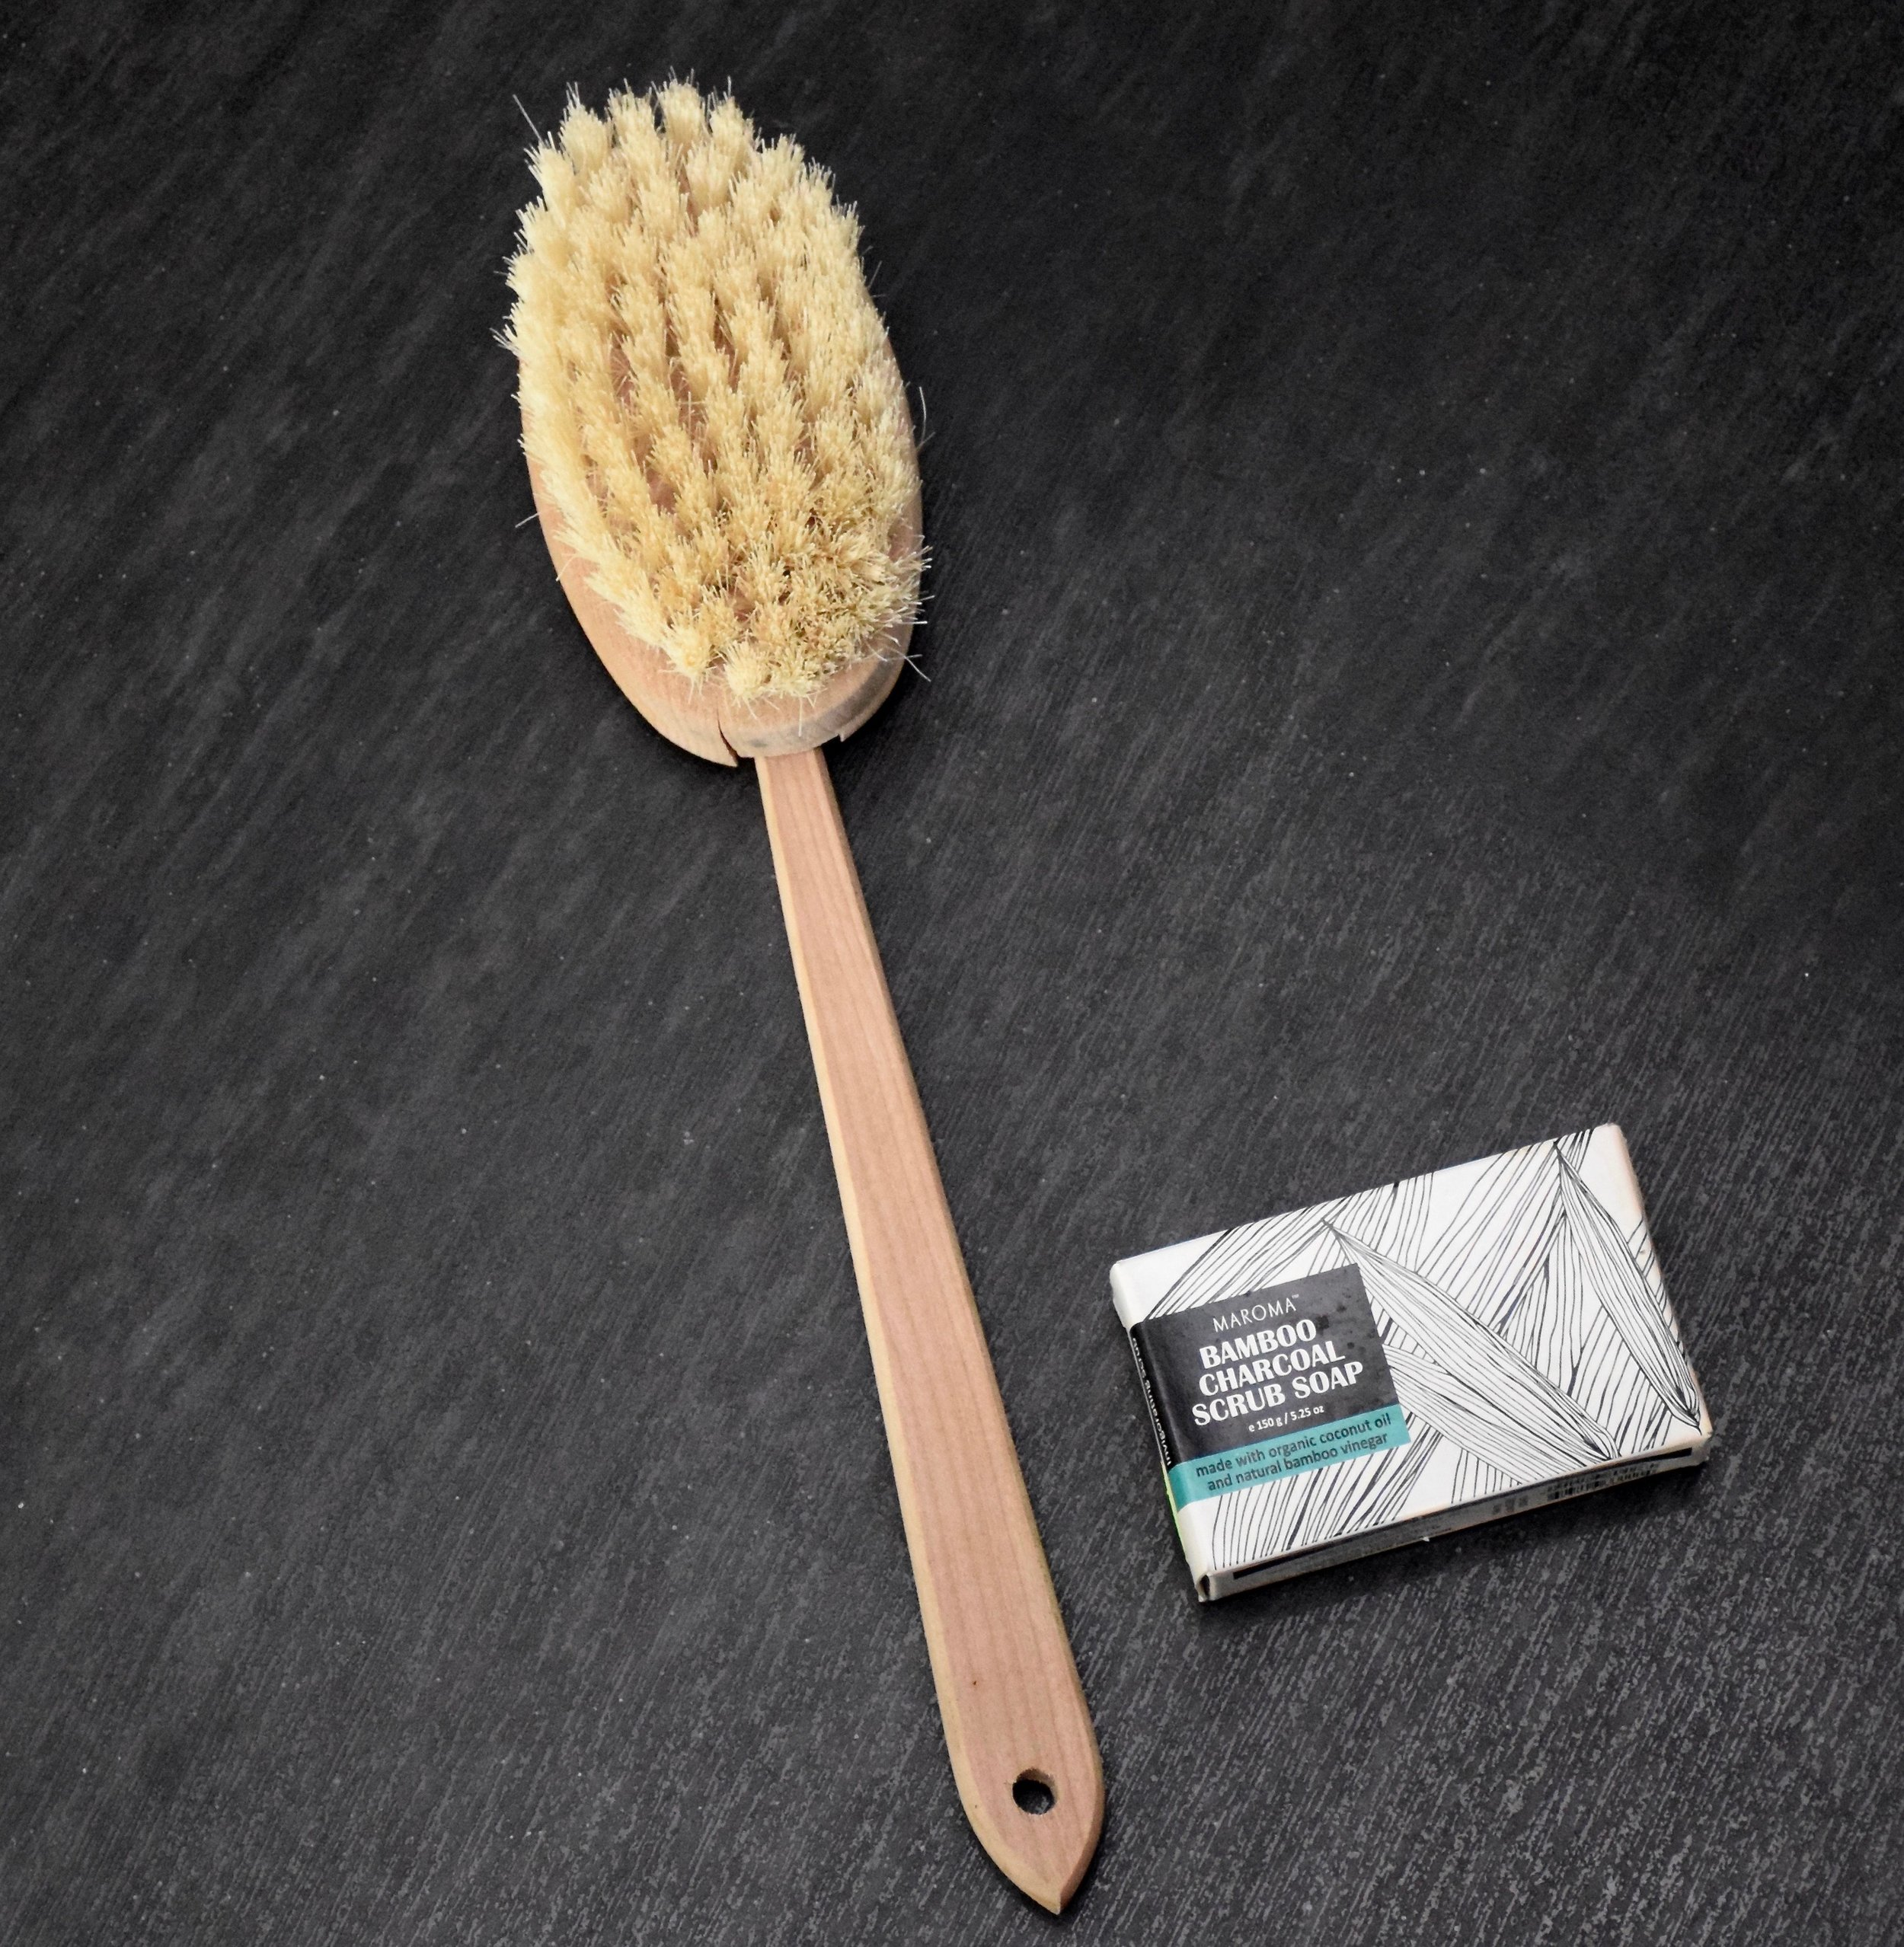 Body Brush for Dry Skin Brushing with Natural Boar Bristles , $16.97